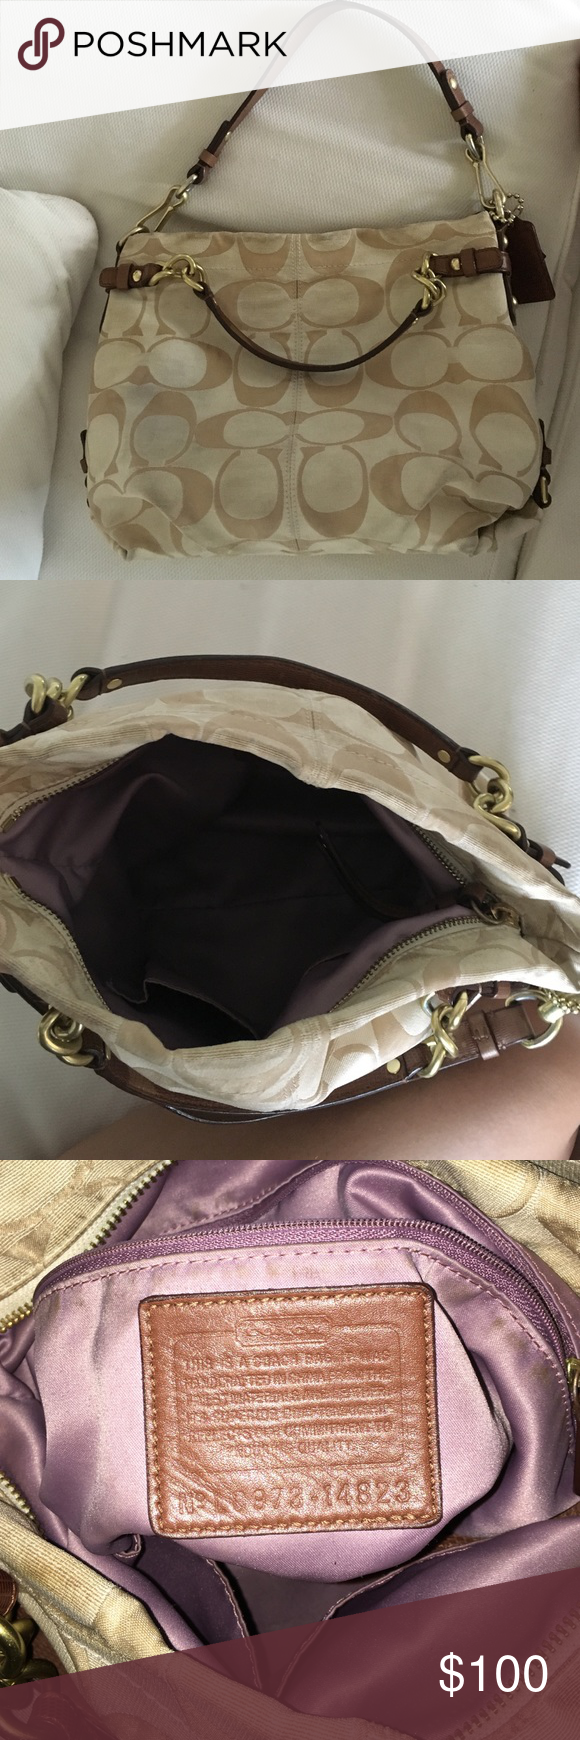 44eb6e7160 Tan and cream coach purse Cream and tan coach purse. 5+ years old. Slightly  worn but still in pretty good condition. Coach Bags Shoulder Bags